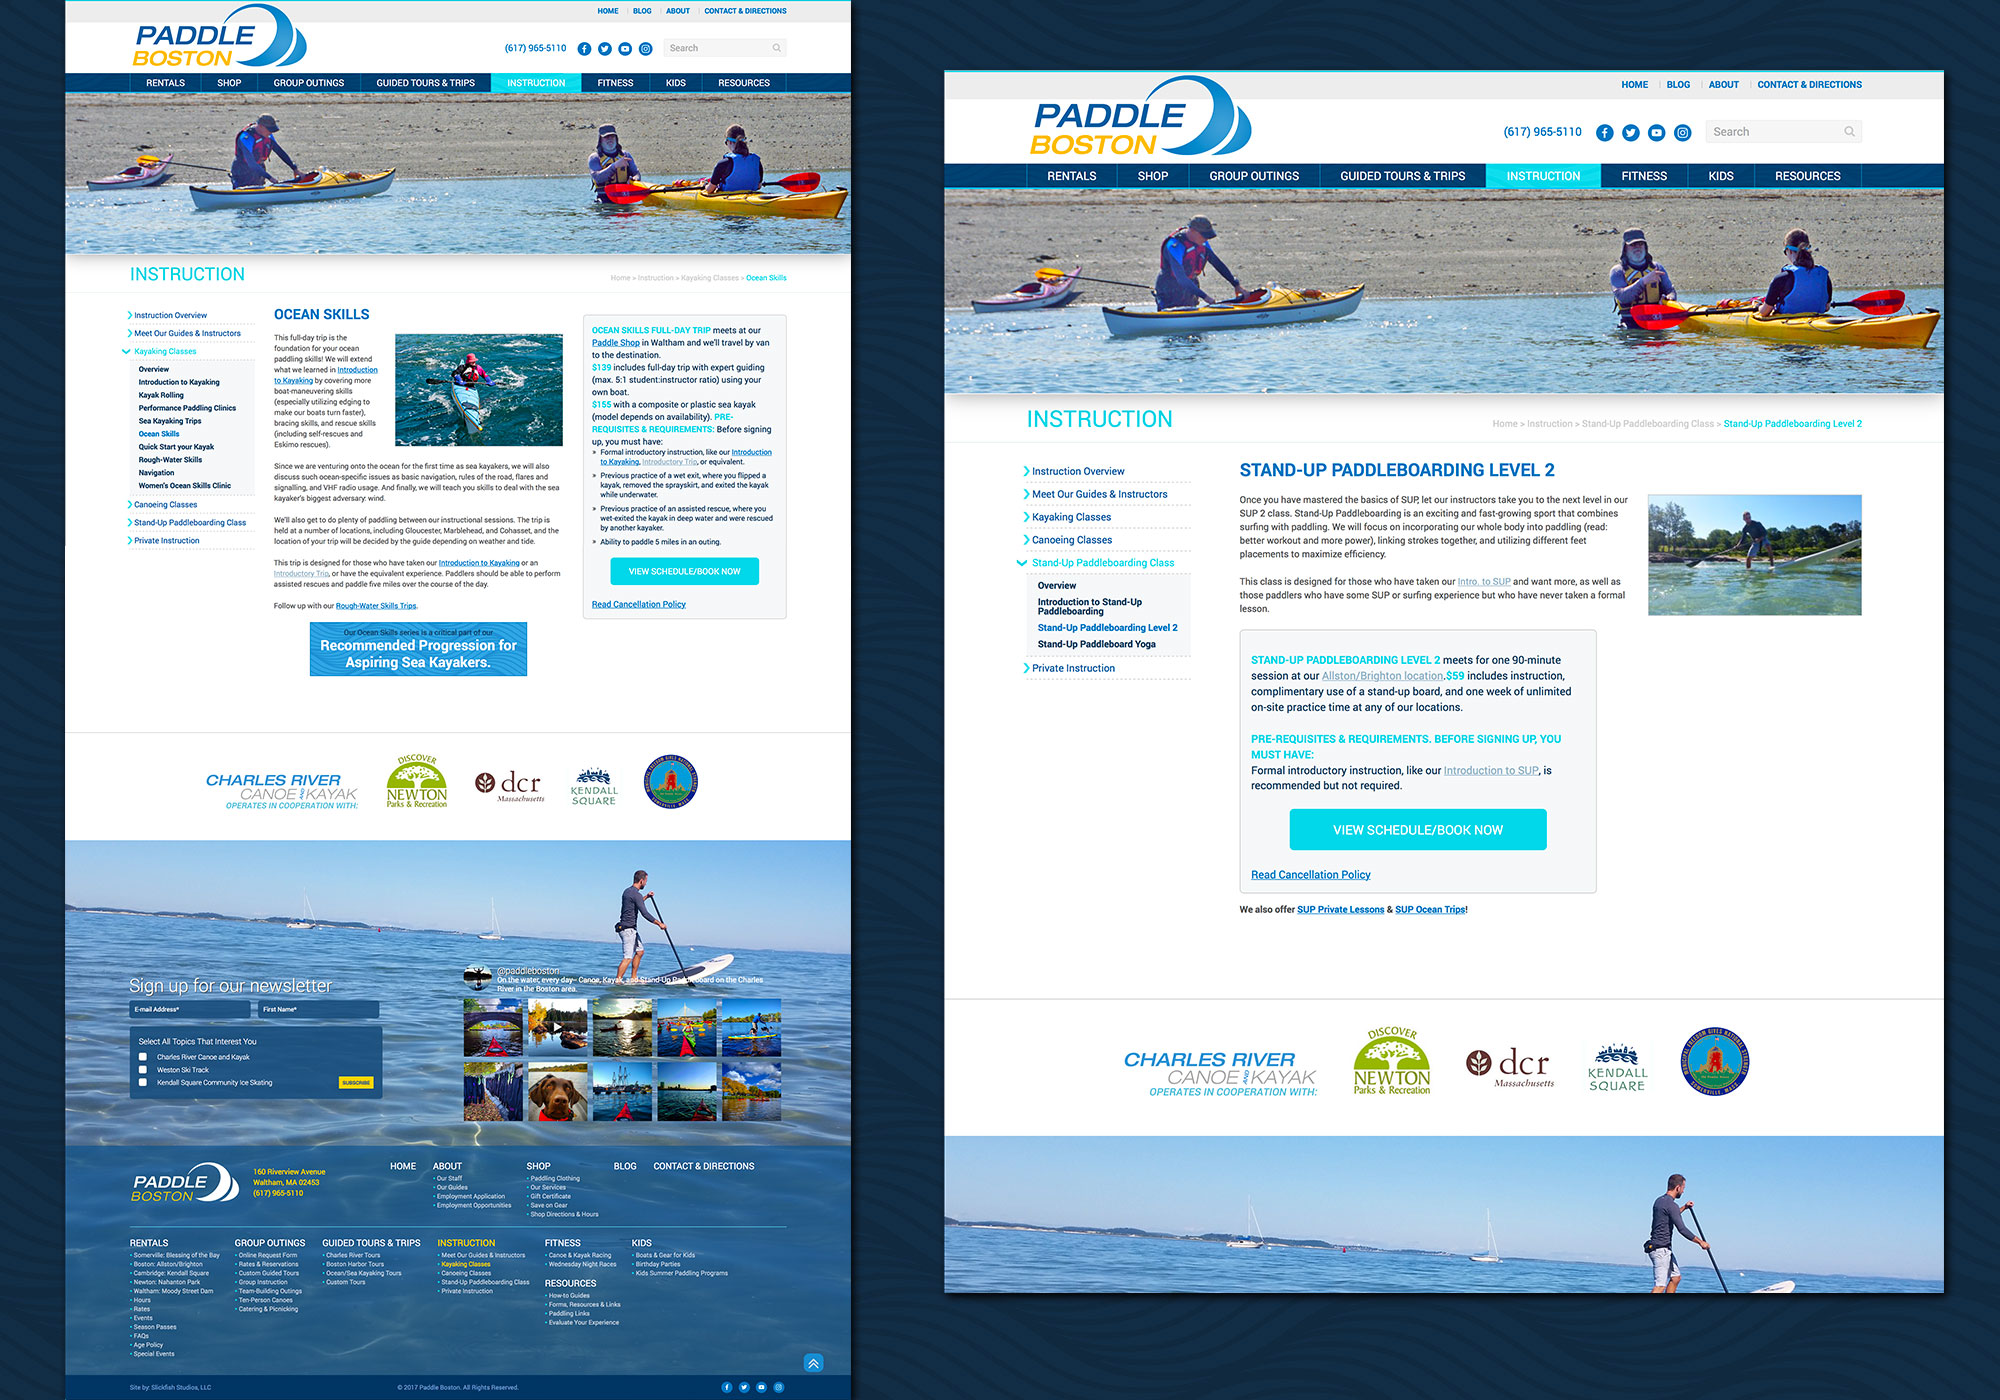 A composite look at the Instruction page/section on the new Paddle Boston website. Includes instruction on Stand-up paddle boards, Kayaking, sea kayaking and canoeing. Designed and developed by Maine website design company, SlickFish Studios